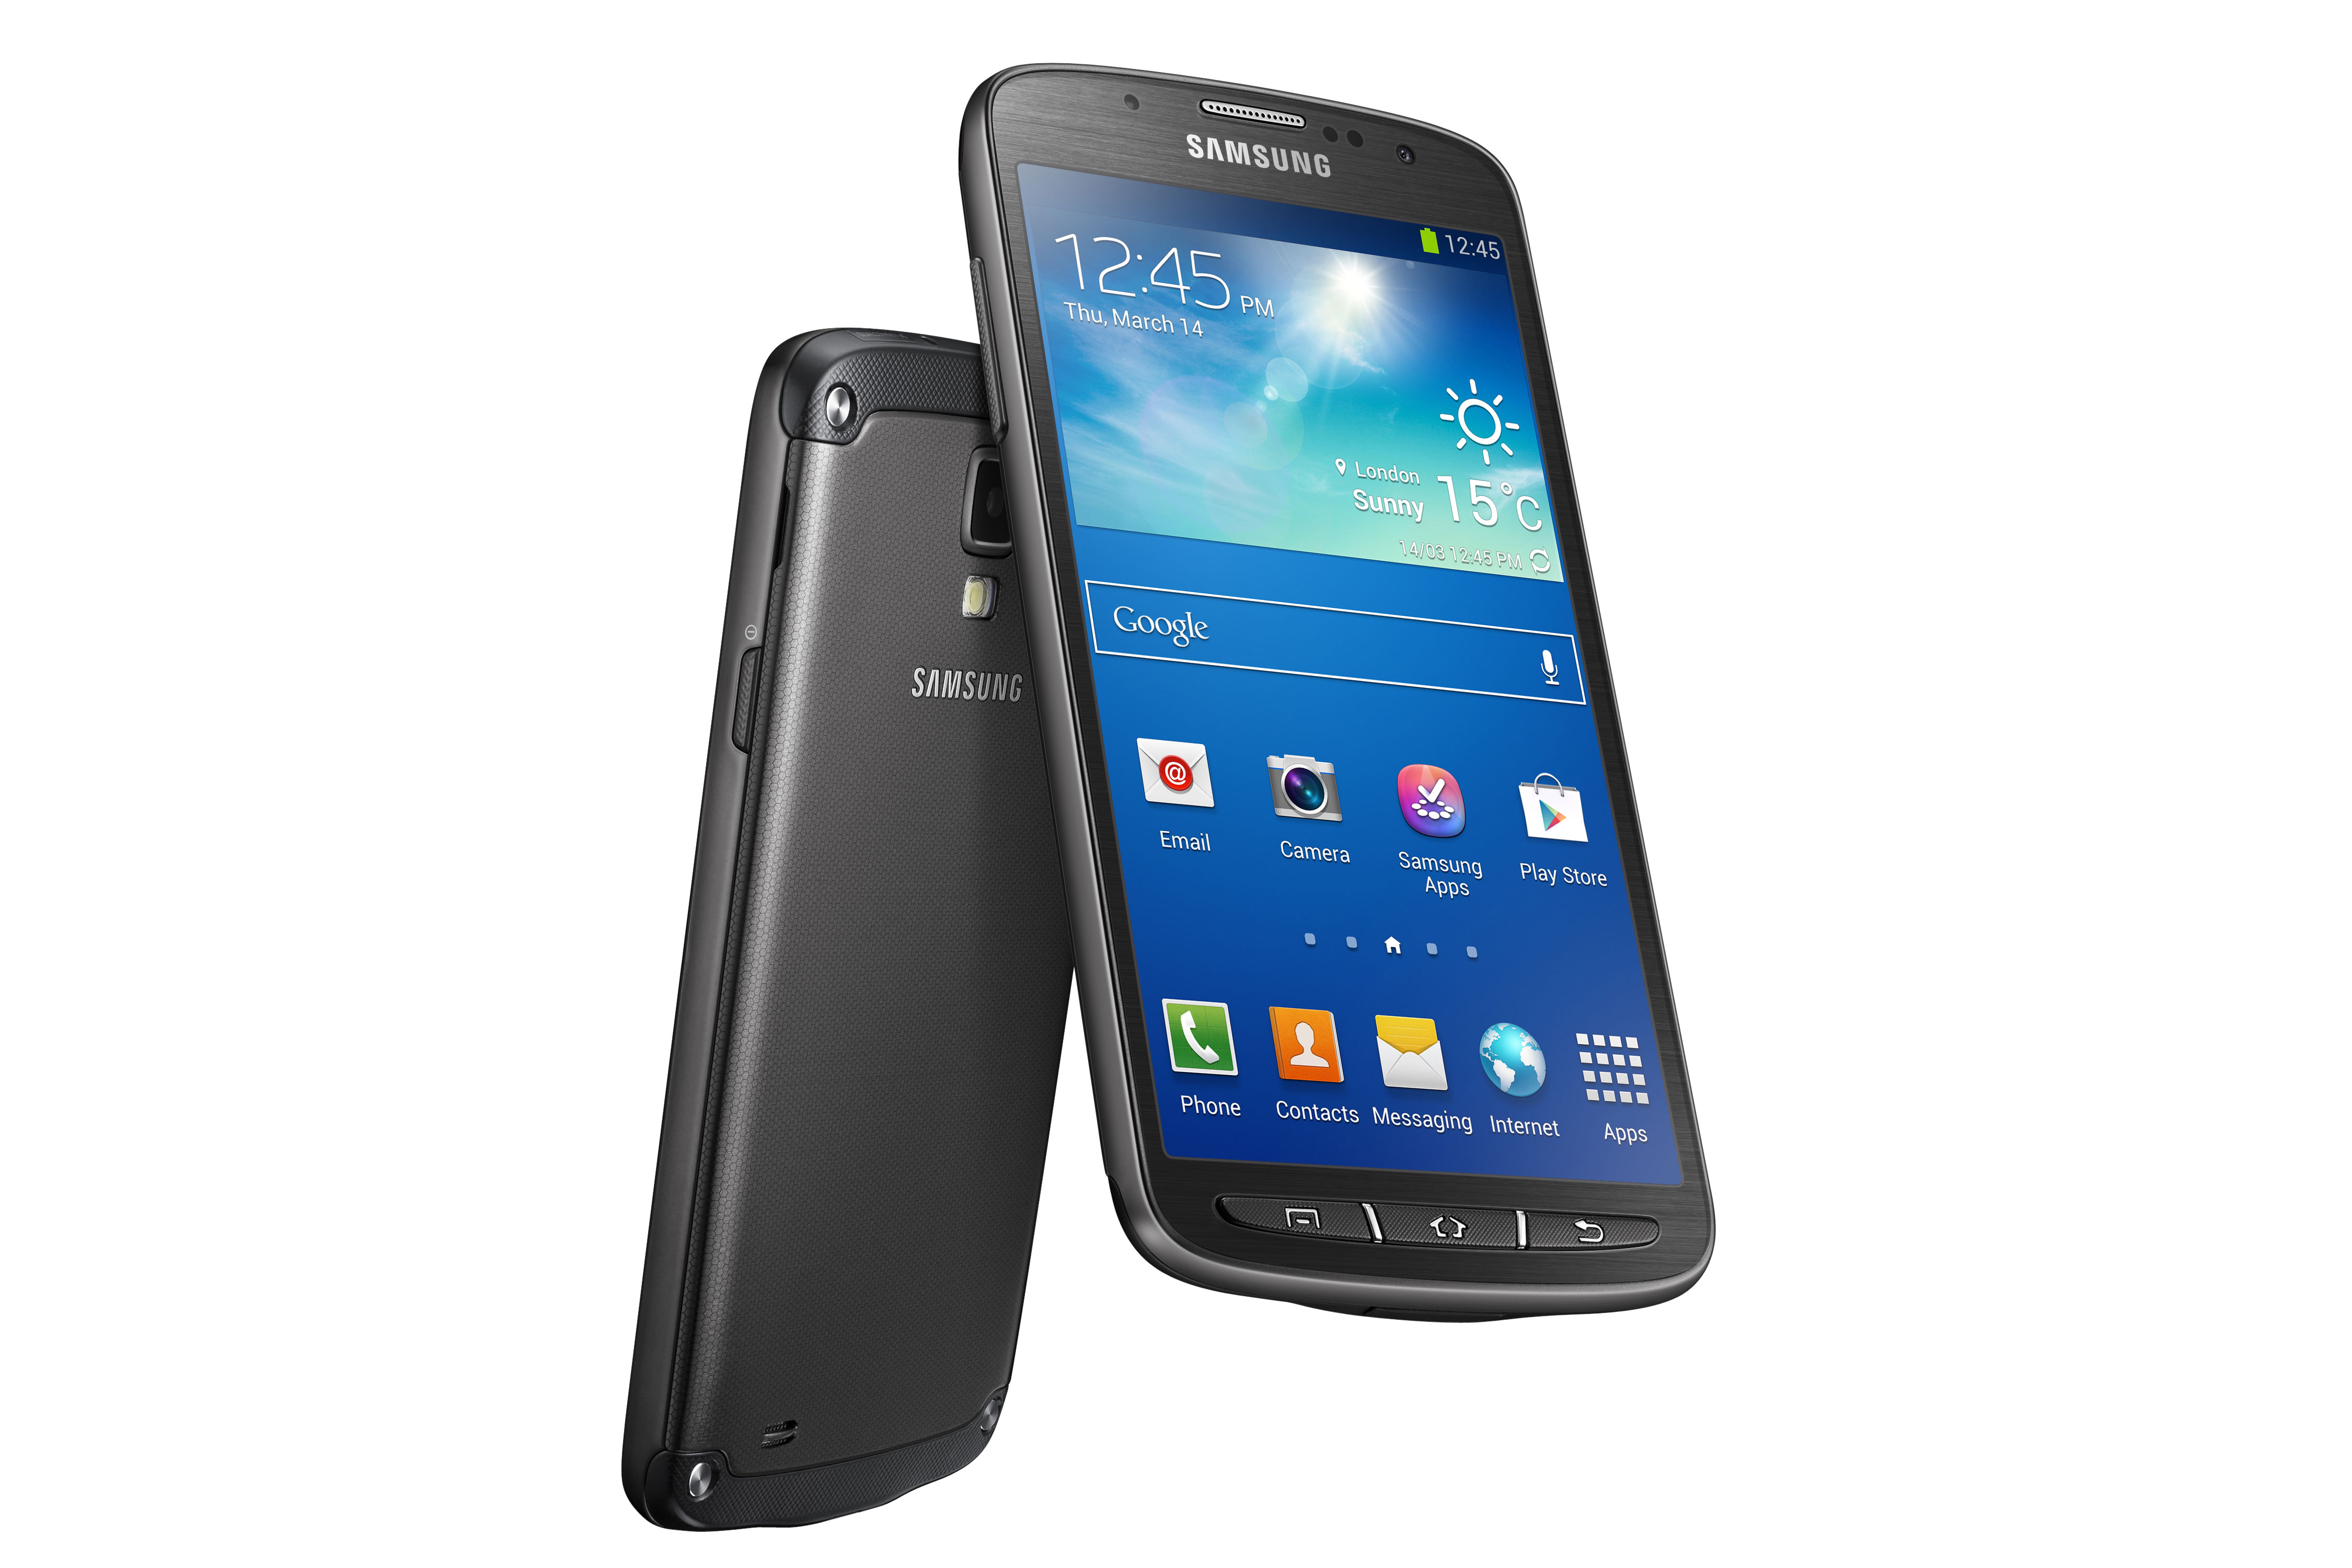 samsung unveils 5 galaxy s4 active android smartphone. Black Bedroom Furniture Sets. Home Design Ideas